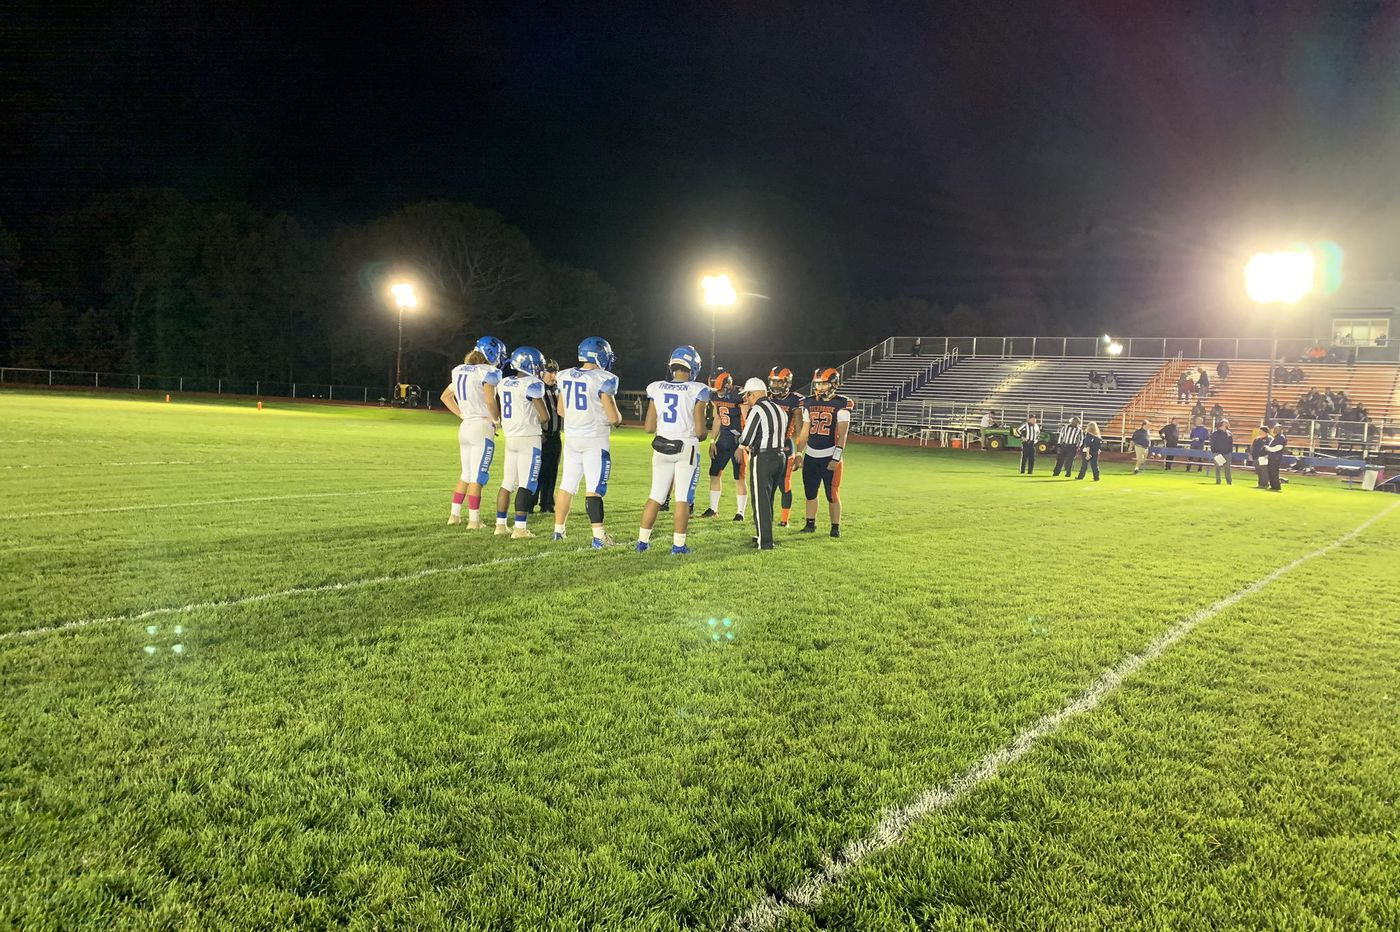 Friday's South Jersey roundup: Delran takes Liberty Division with win over Northern Burlington